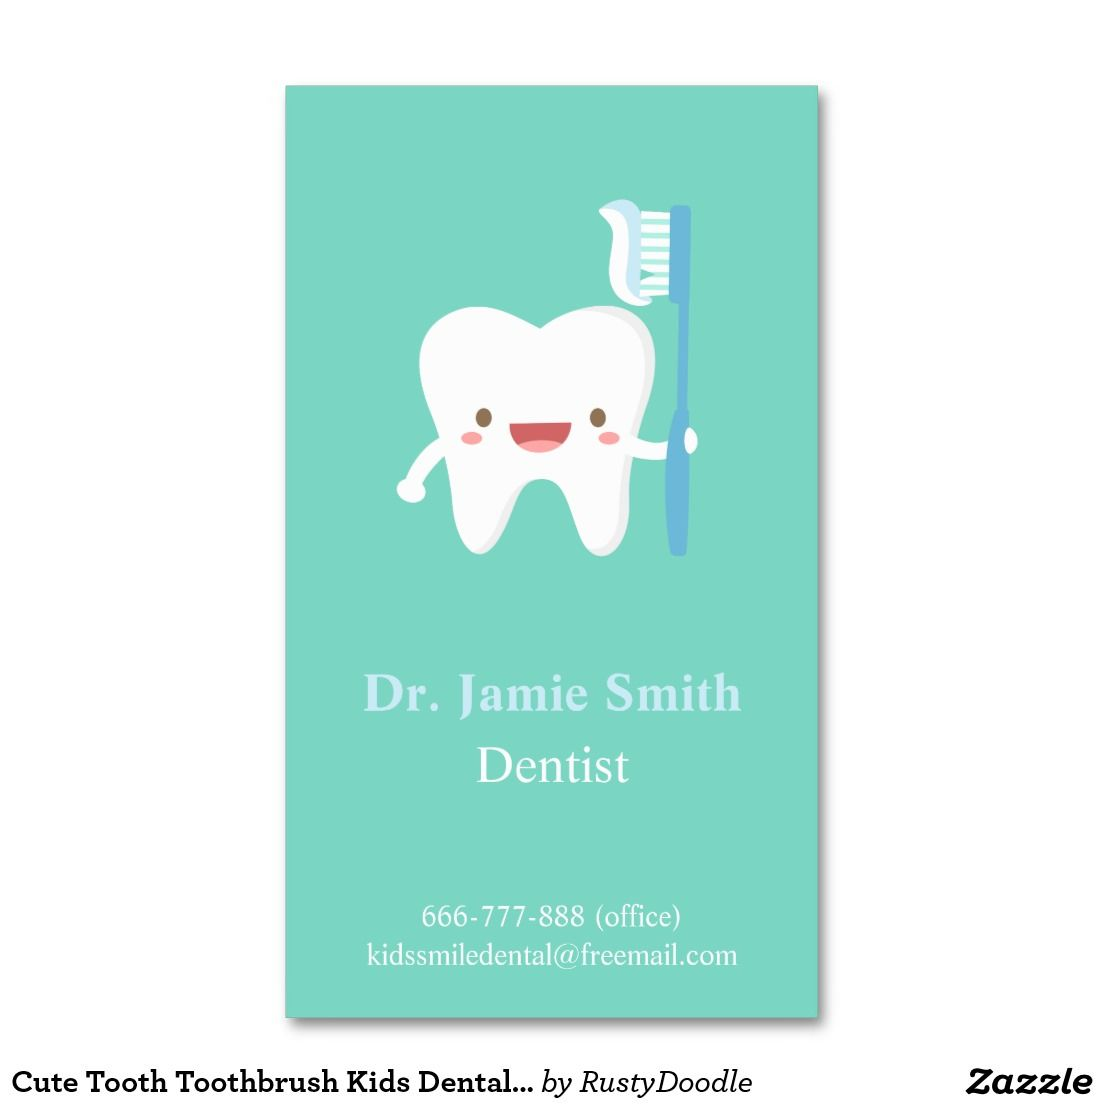 Cute Tooth Toothbrush Kids Dental Business Cards | Strictly ...